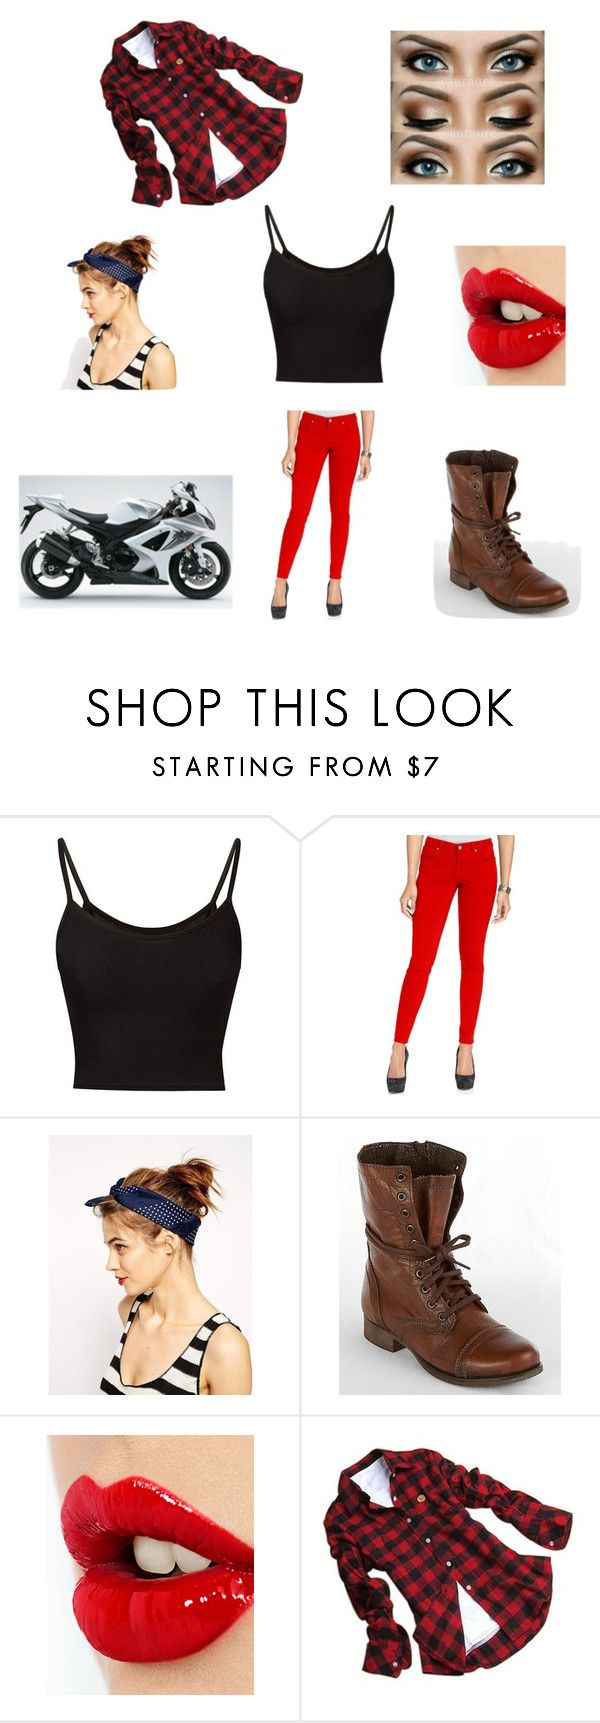 """""""Meeting Raph"""" by maryvarleyrox ❤ liked on Polyvore featuring Style & Co., ASOS, Steve Madden, Charlotte Tilbury and Edition"""